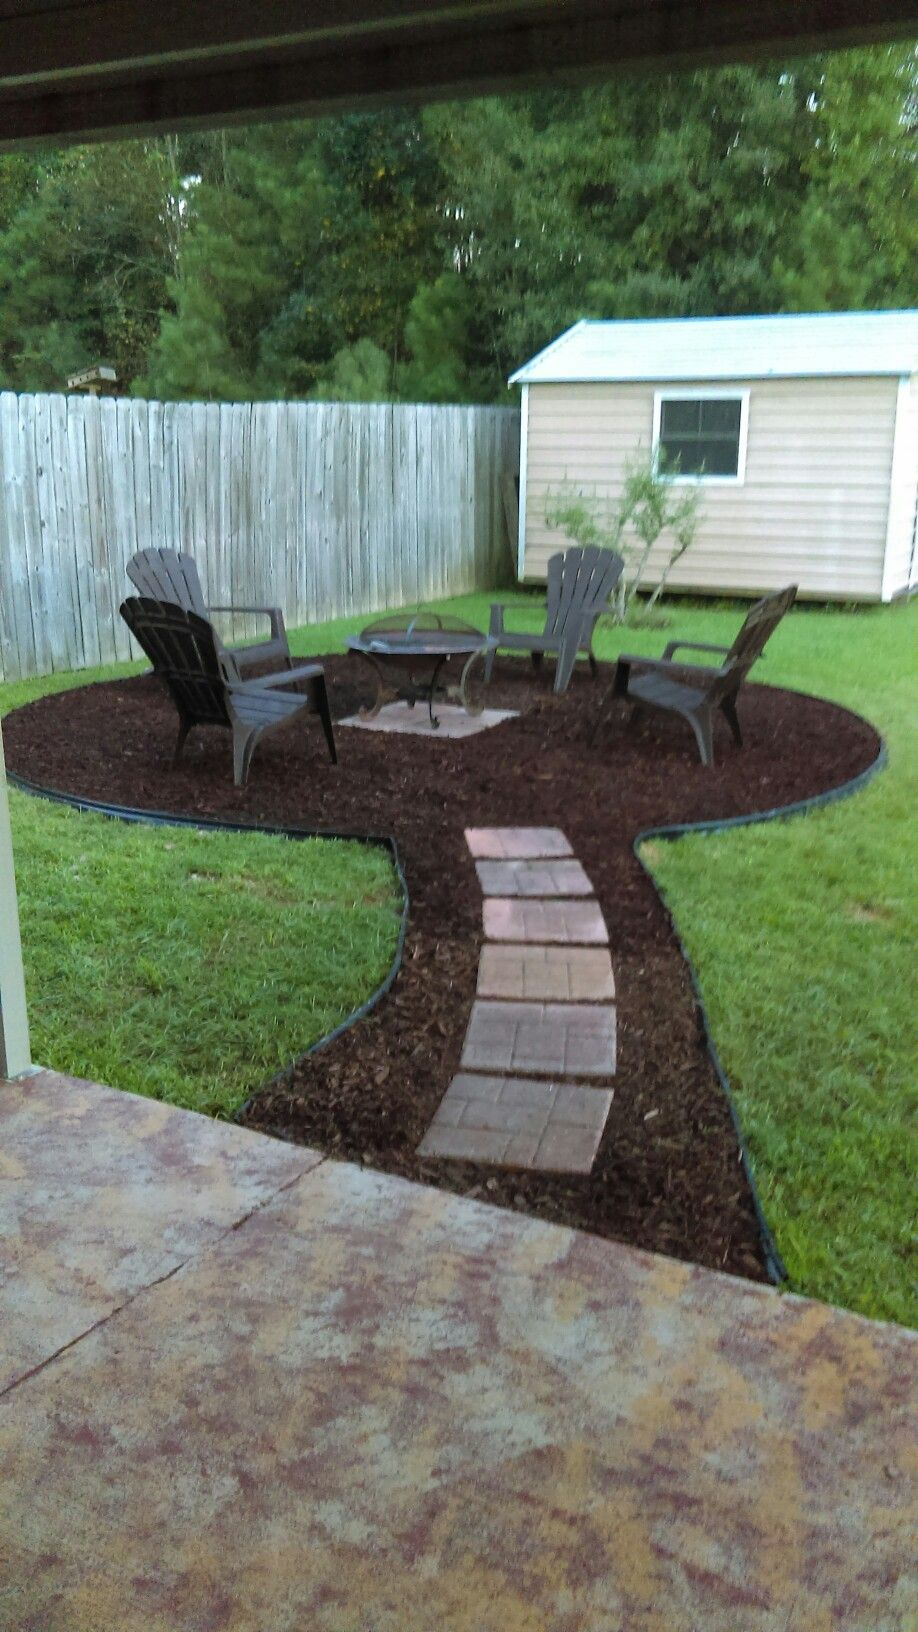 DIY Firepit Area Mulch Stepping Stones Edging